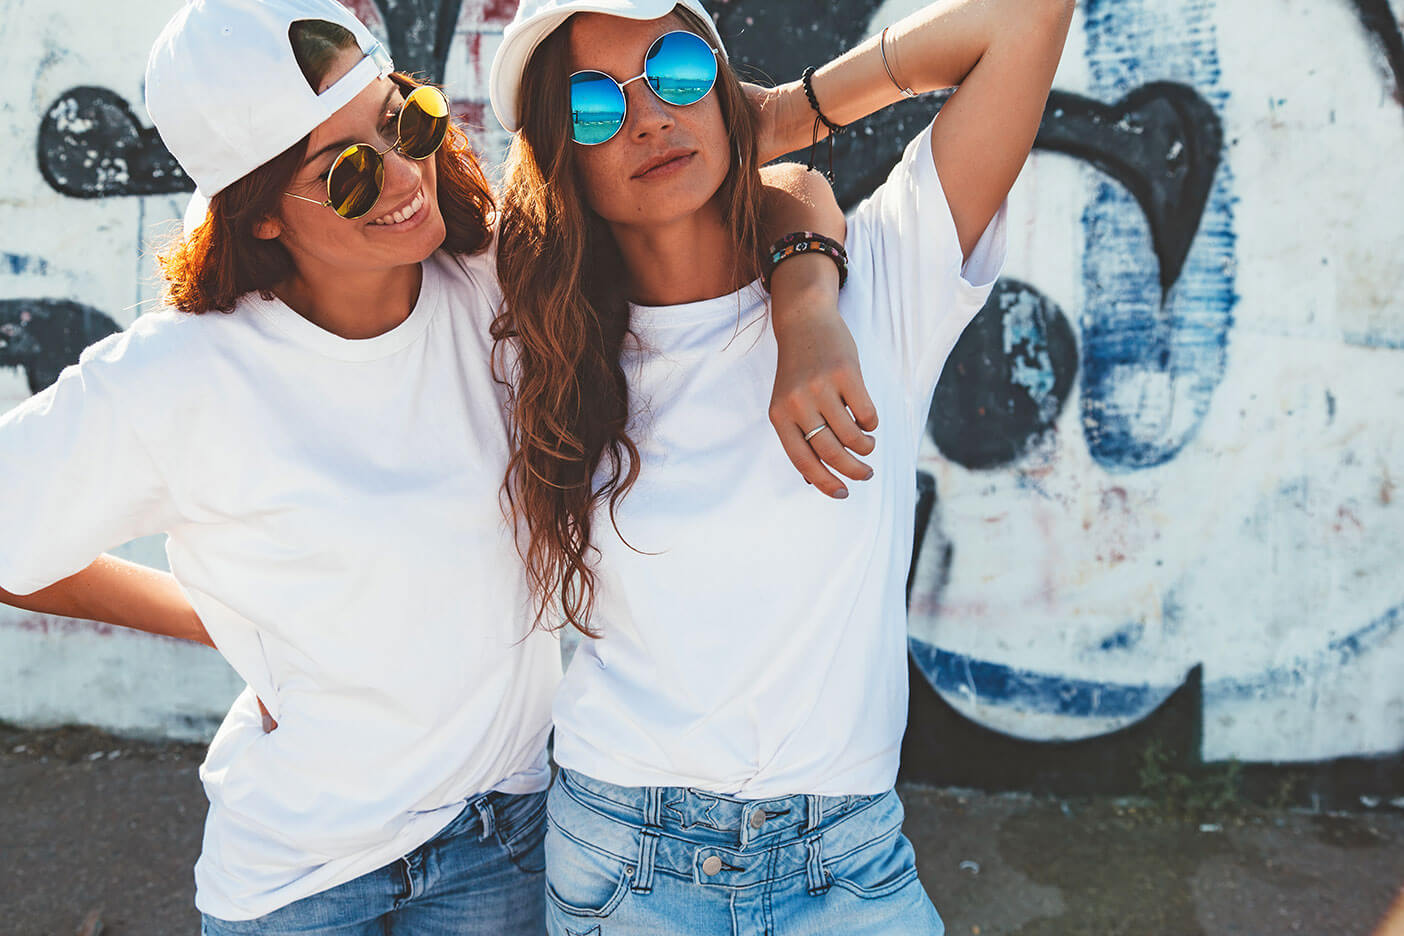 knowy young people, junge coole Frauen lachend